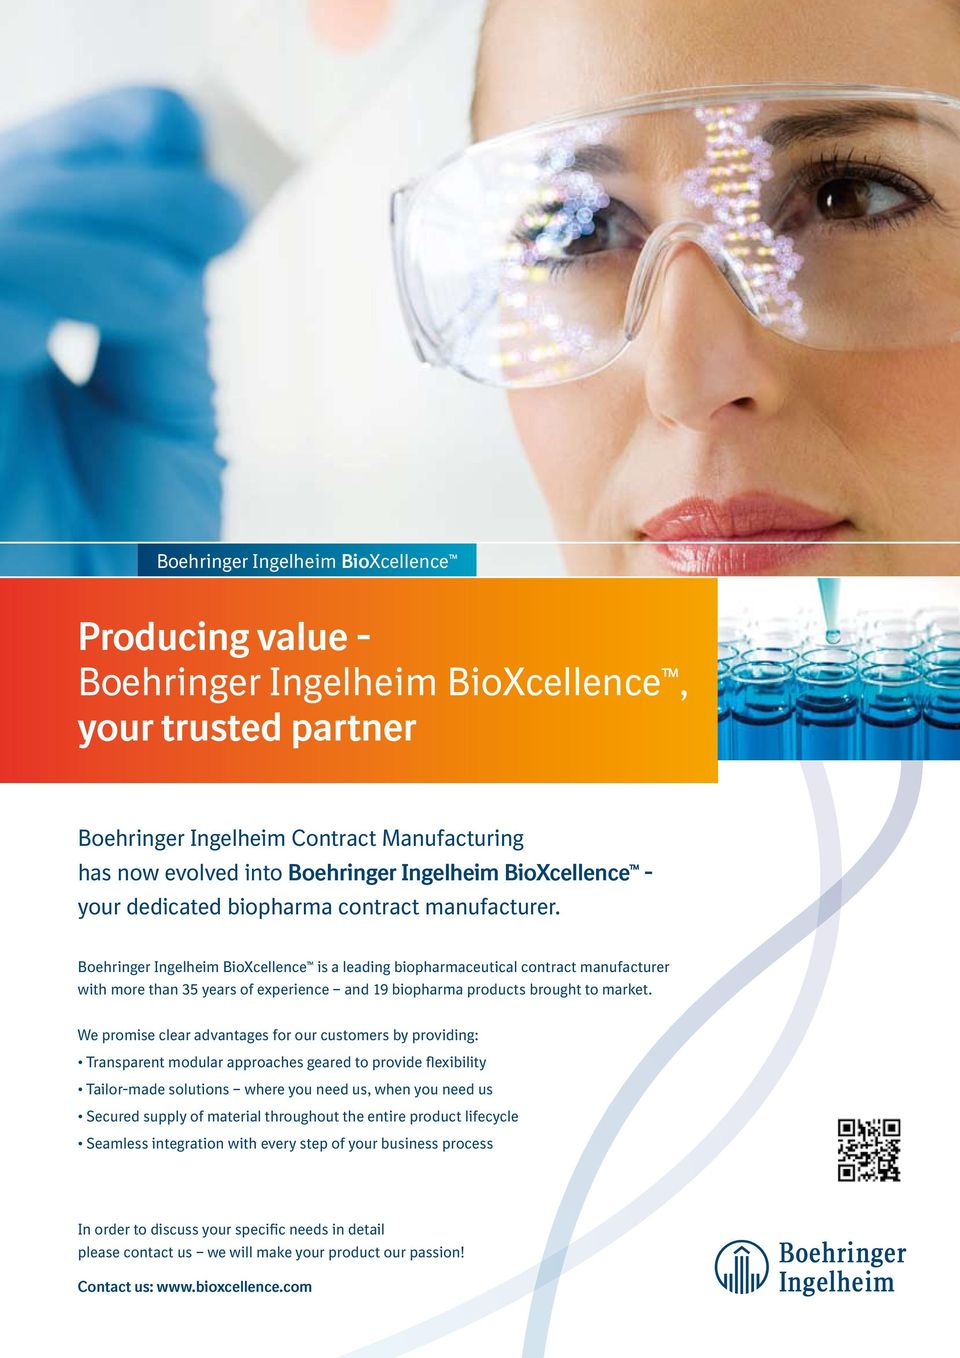 Boehringer Ingelheim BioXcellence is a leading biopharmaceutical contract manufacturer with more than 35 years of experience and 19 biopharma products brought to market.